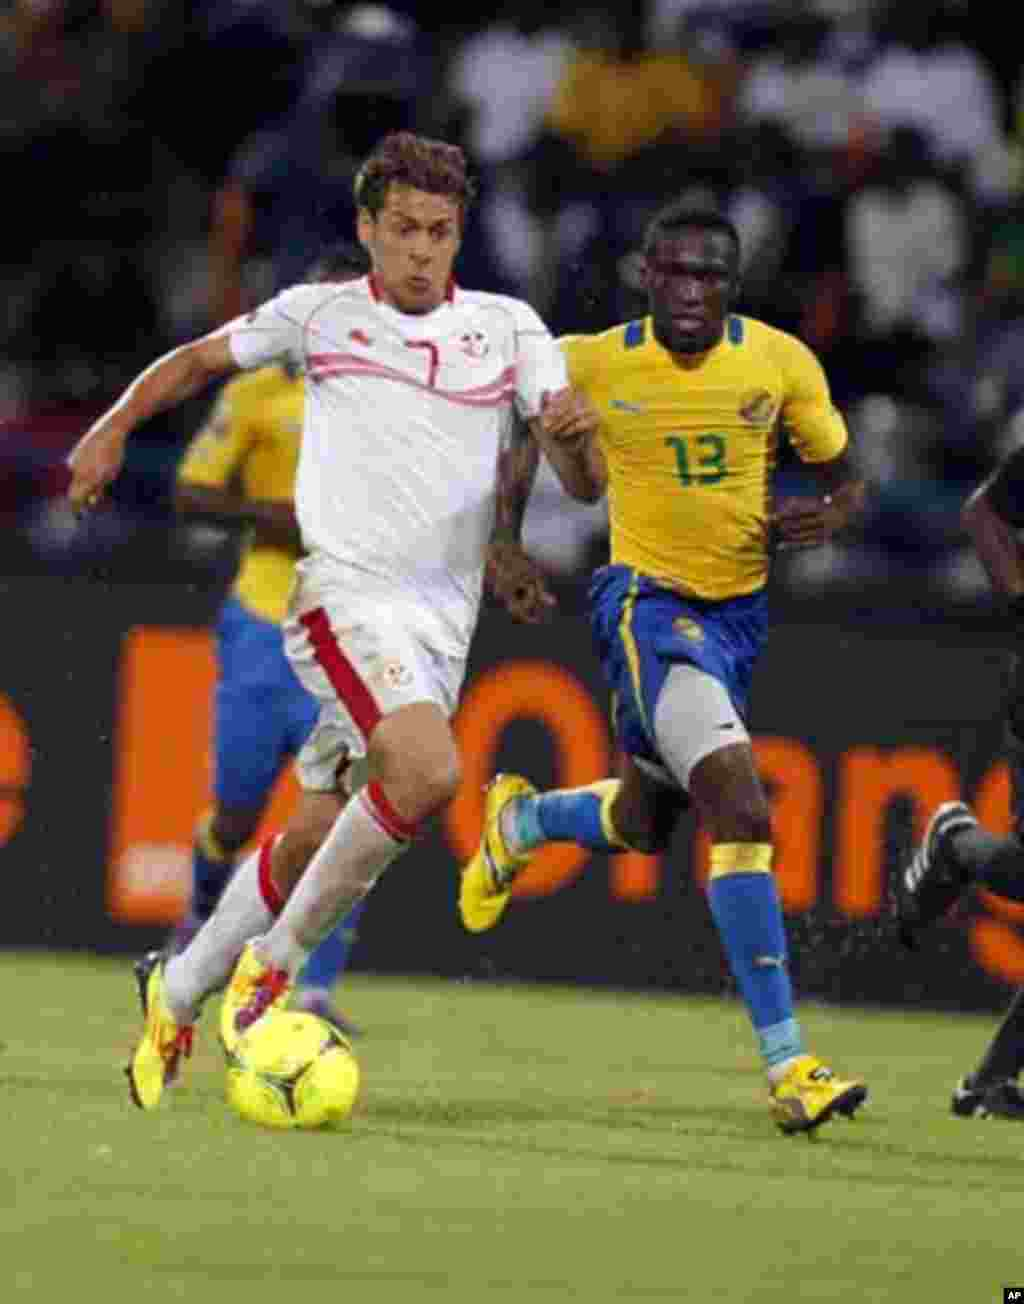 Tunisia's Youssef Msakni (R) challenges Mbanangoye Bruno Zita of Gabon during their African Cup of Nations Group C soccer match at Franceville stadium in Gabon January 31, 2012.